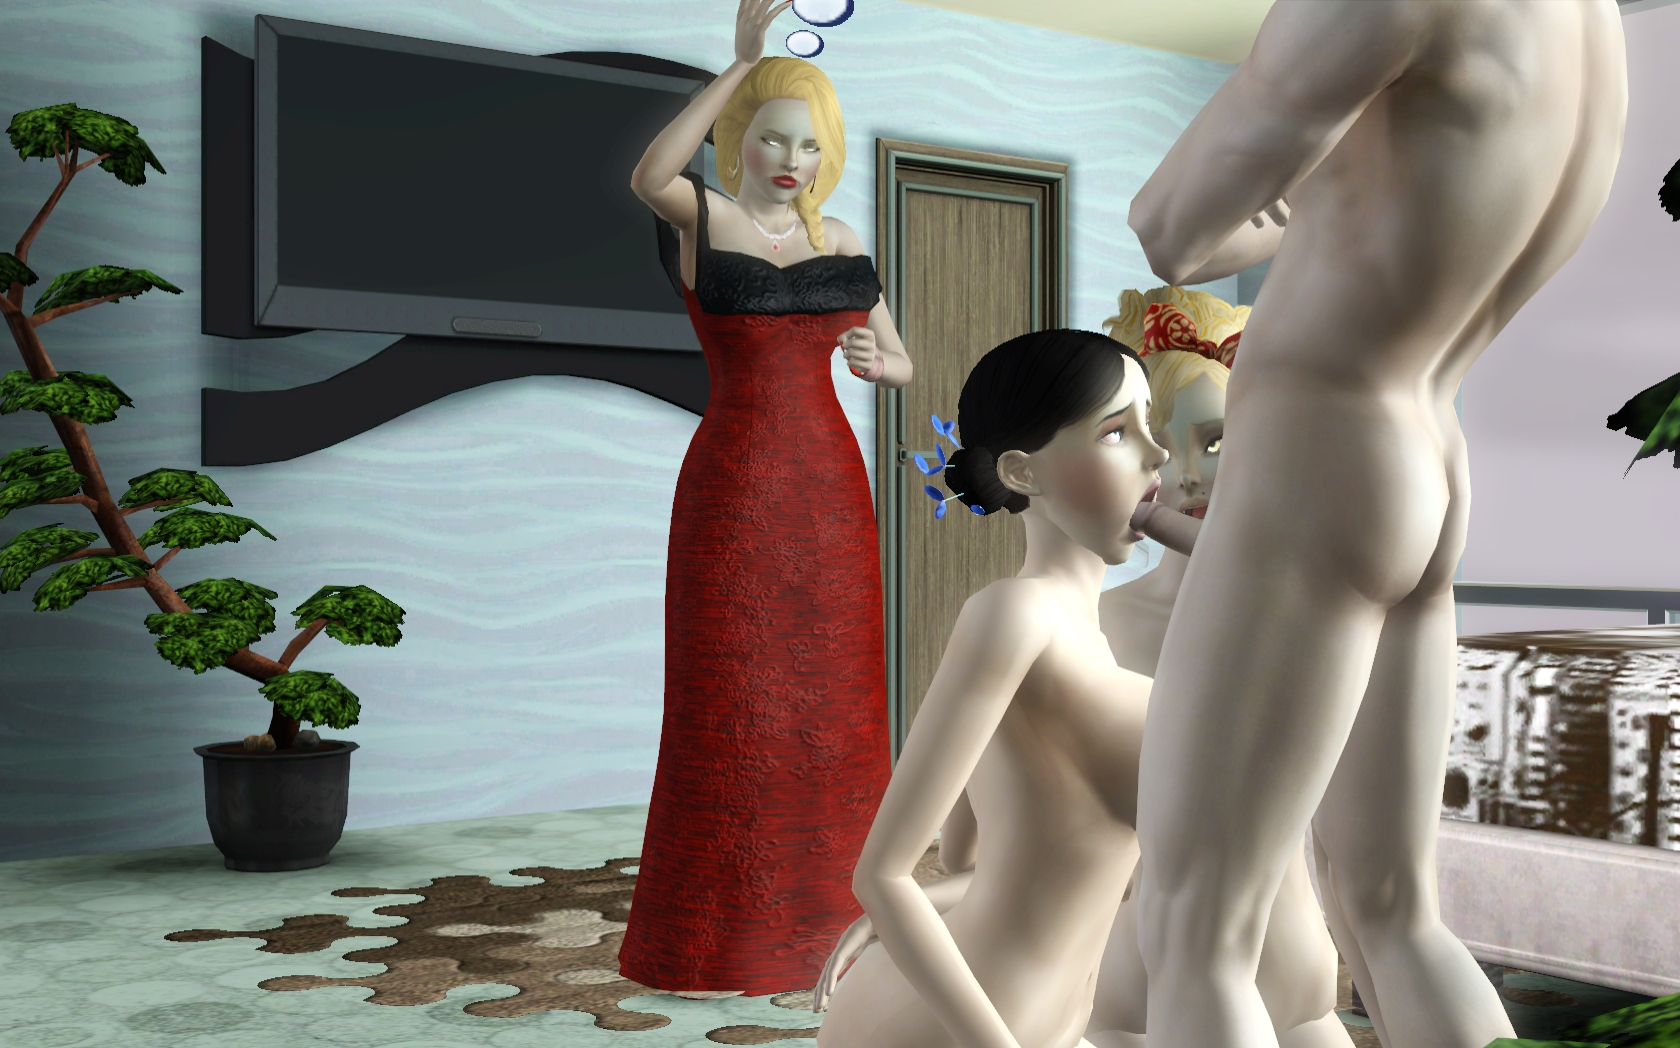 Sex mod v the sims 3 exposed pic